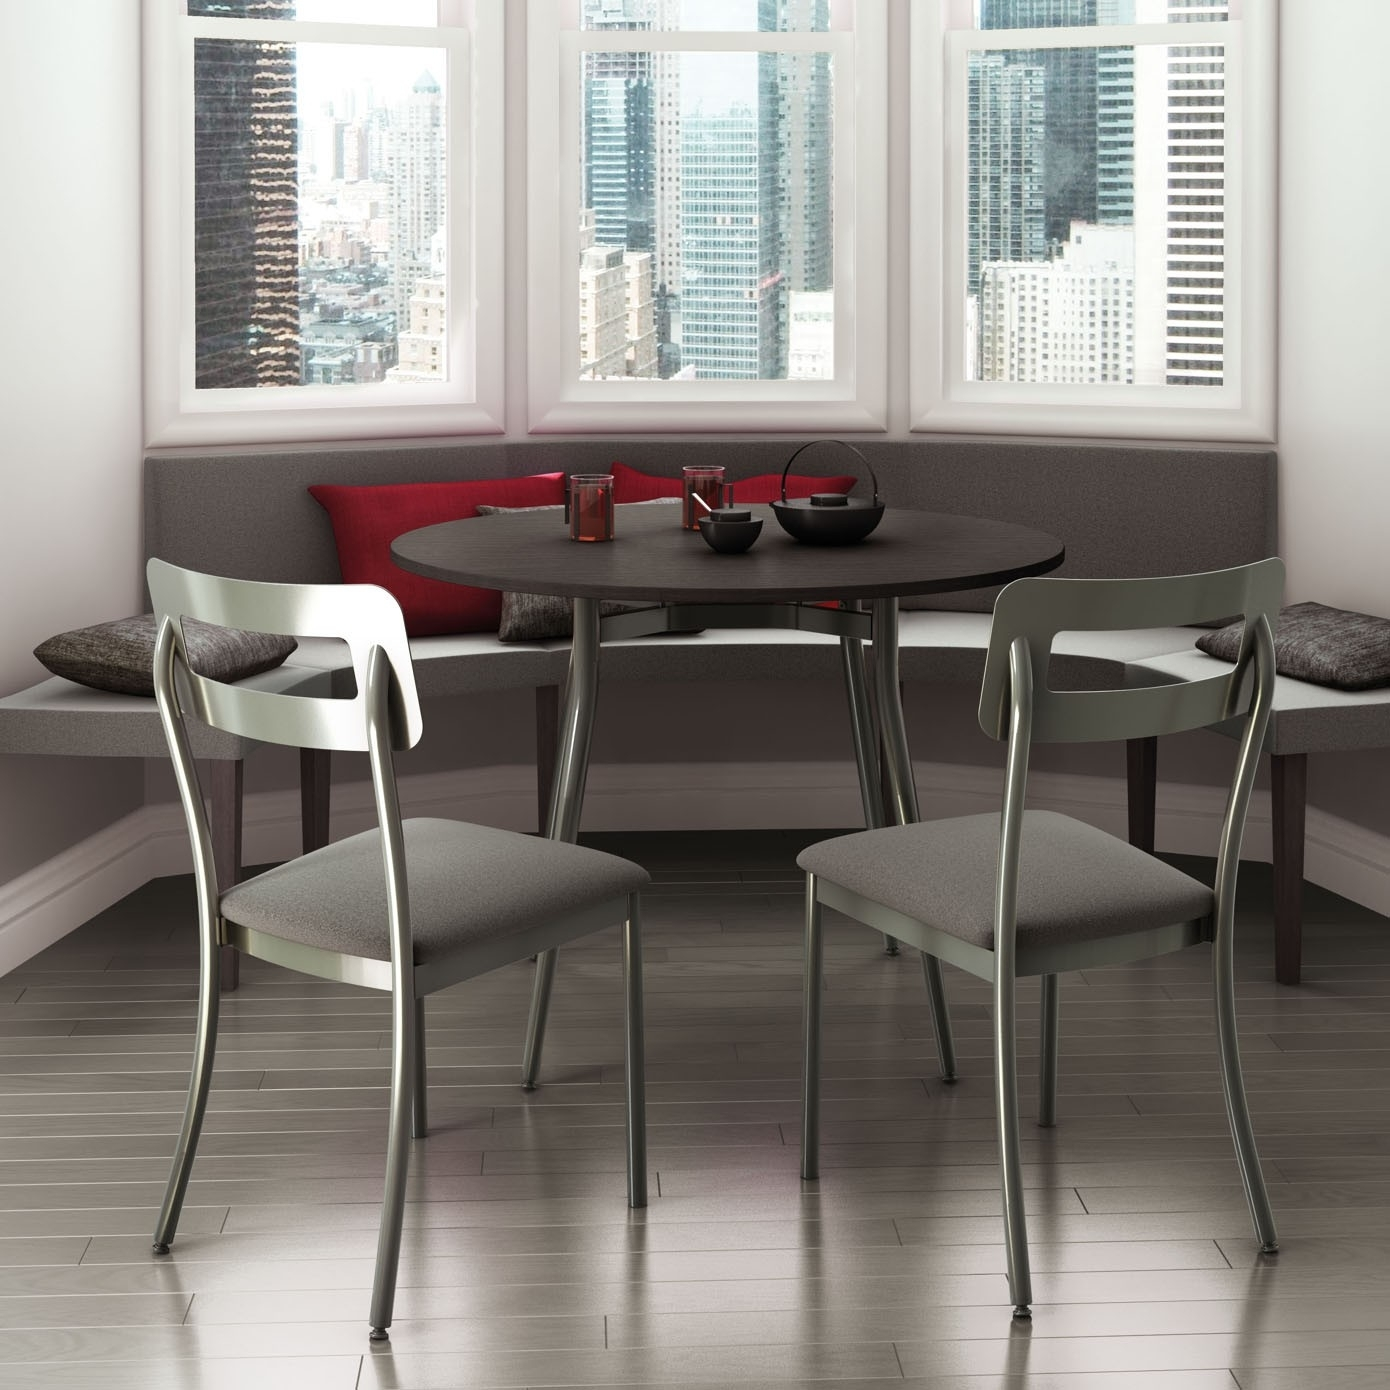 Cora Dining Chair, Amisco Canada – Italmoda Furniture Store Within Most Popular Cora Dining Tables (Photo 16 of 20)